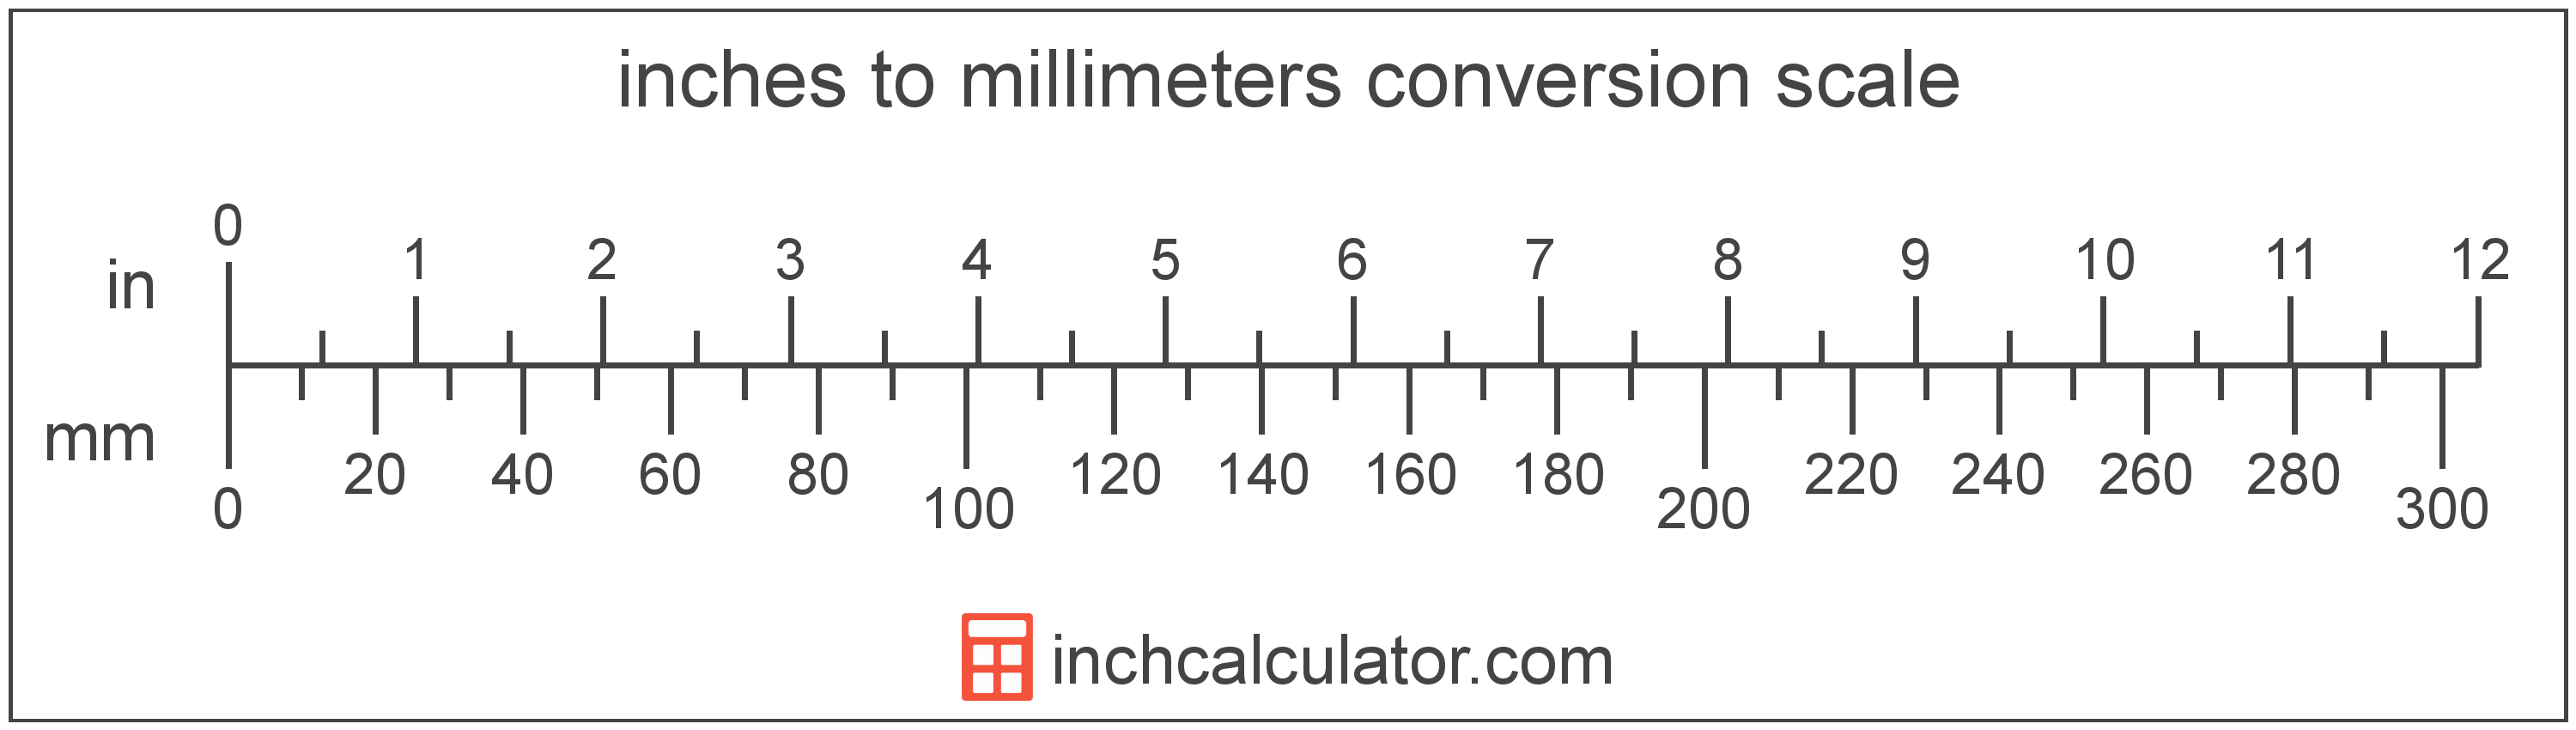 nanometers and inches are units used to measure length